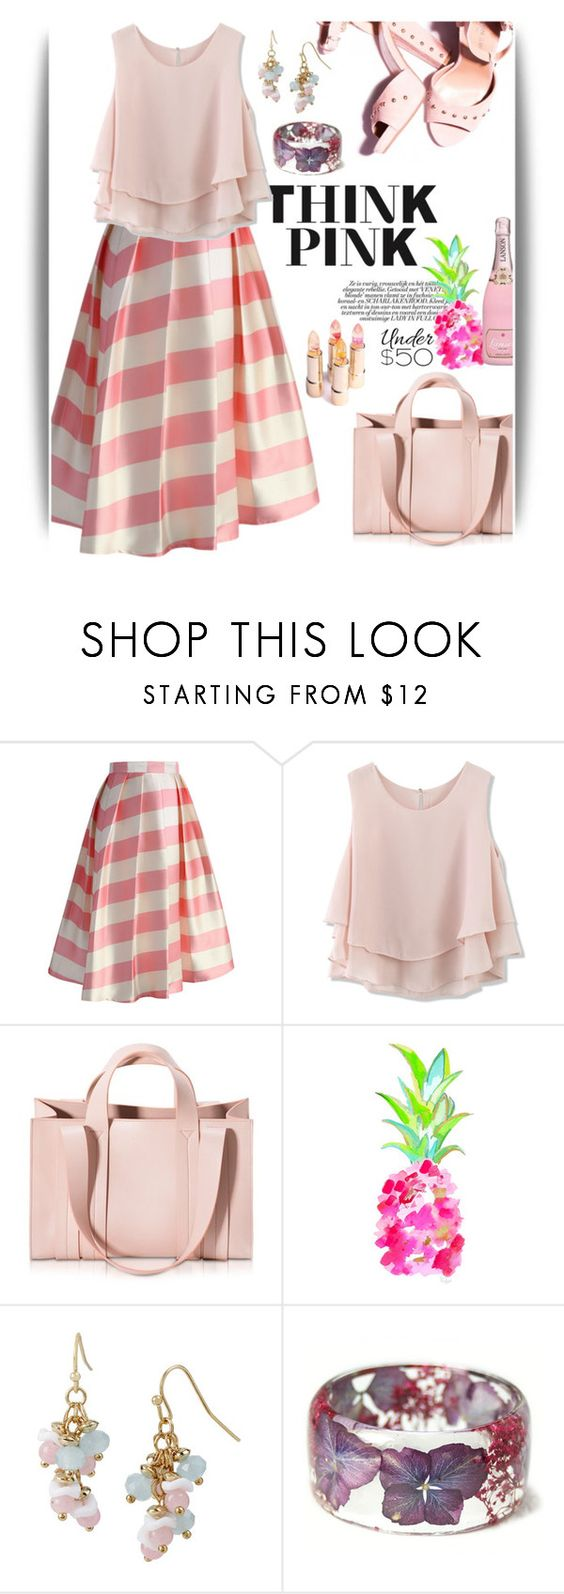 """""""189"""" by believelikebreathing ❤ liked on Polyvore featuring Chicwish, Corto Moltedo, Mixit, under50 and skirtunder50"""